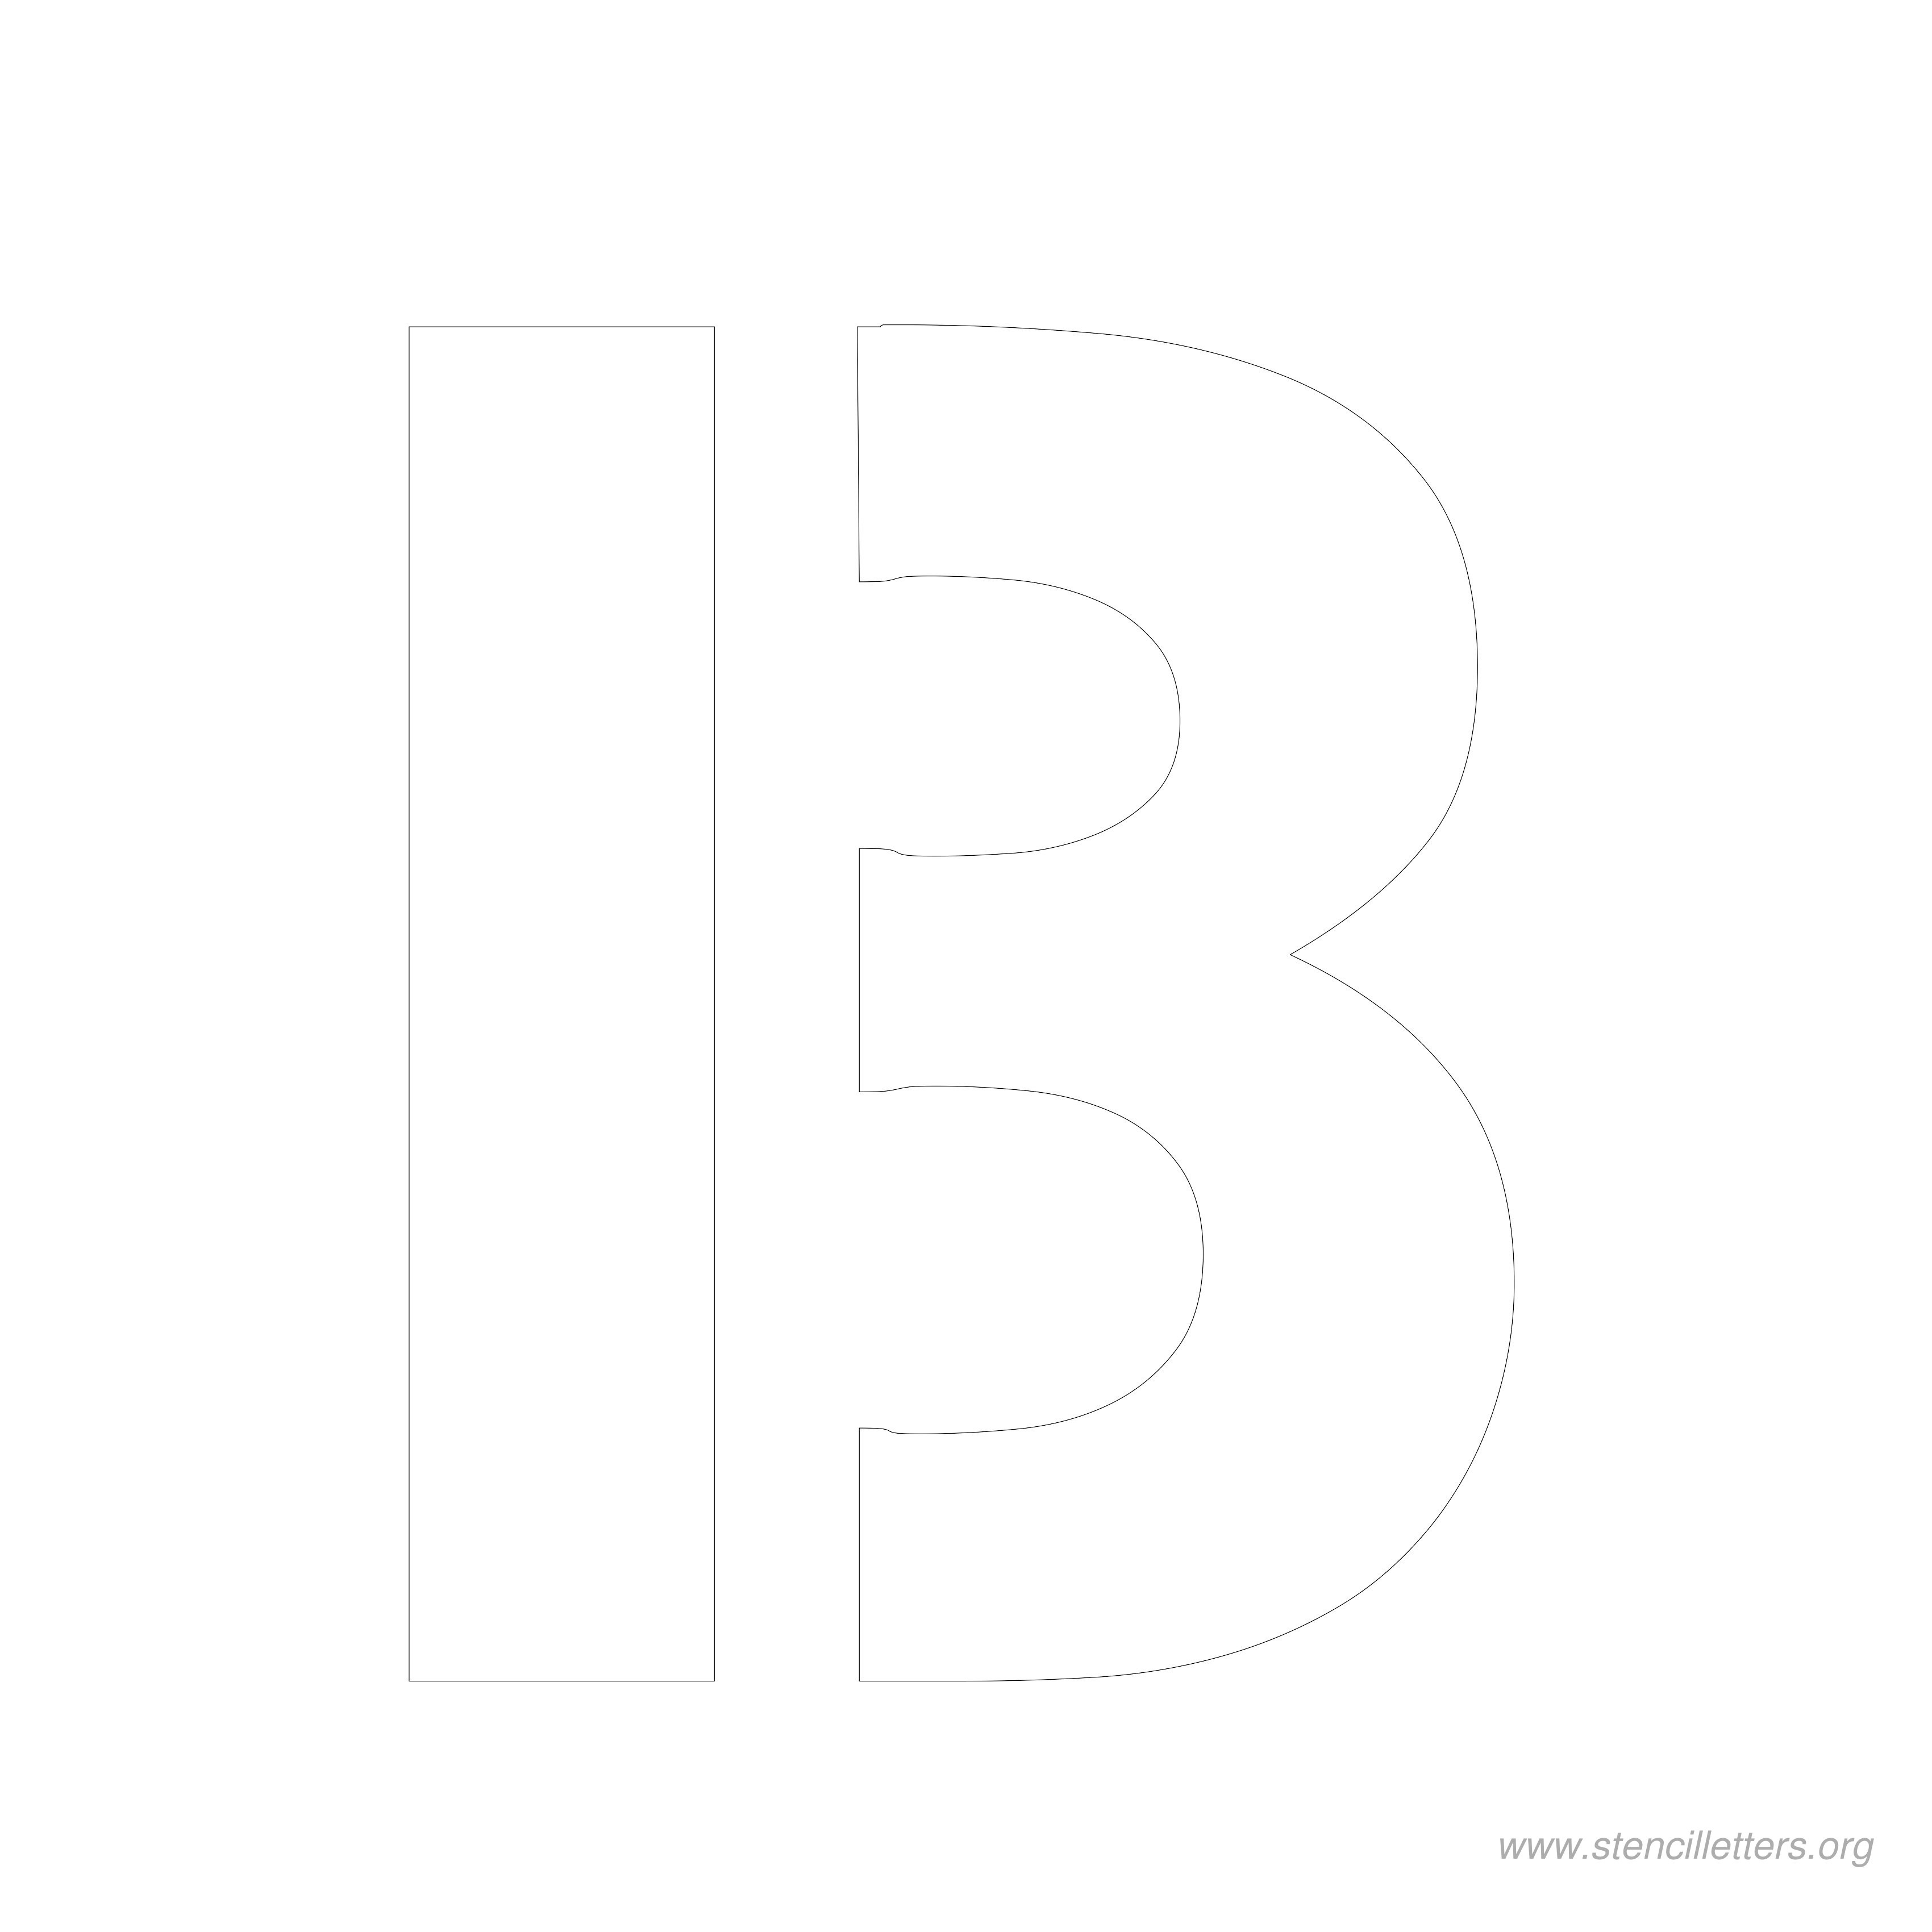 8 Inch Stencil Letters   Stencil Letters Org - Free Printable 10 Inch Letter Stencils